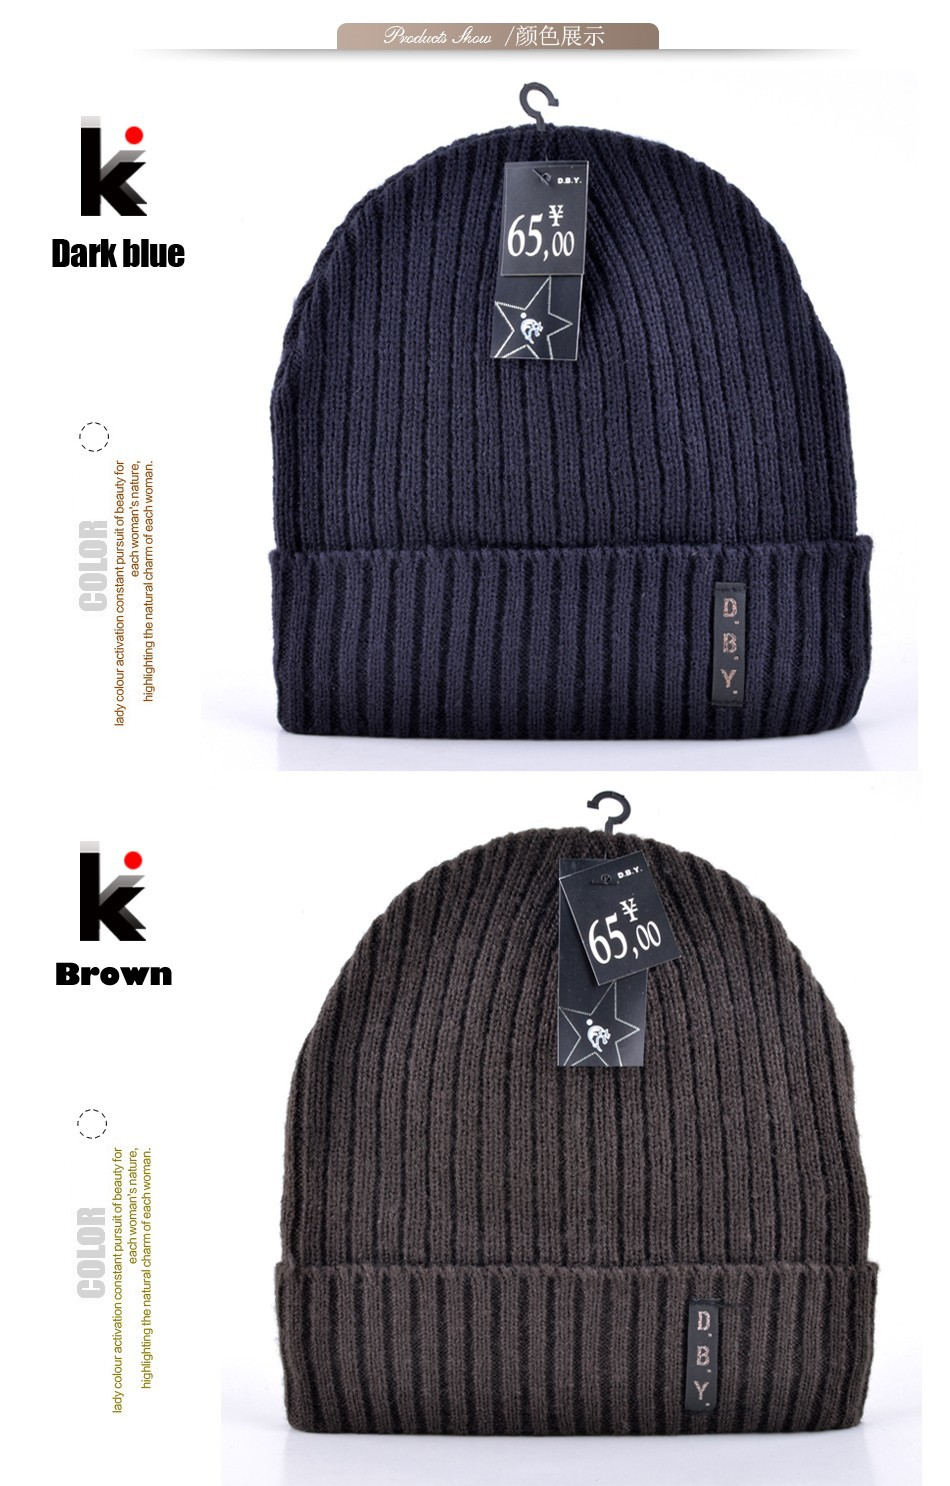 a13f00c7485f0 Wholesale 2015 Mens Designer Hats Bonnet Winter Beanie Knitted Wool ...